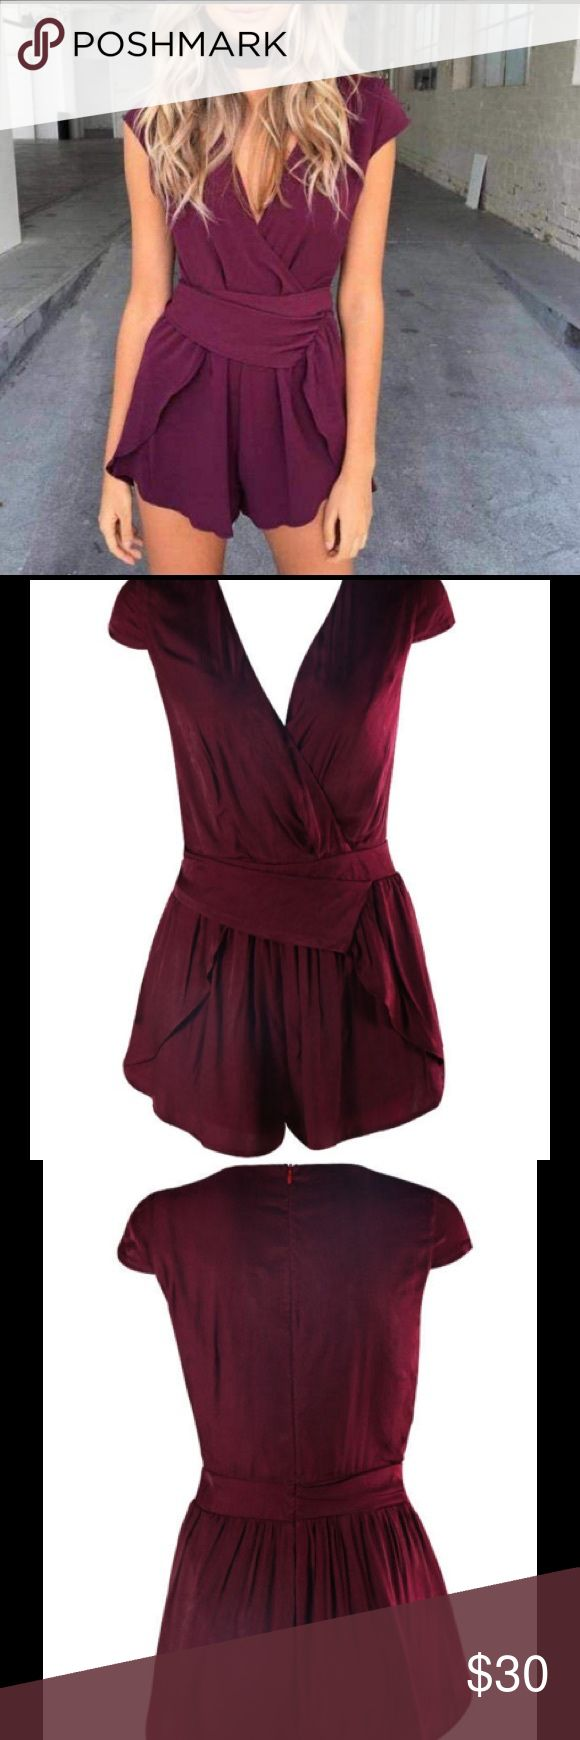 Lilac Shade Prezy Playsuit Color: Burgundy / Deep Purple Material: Polyester Measurements (cm) L: bust 92 waist 76 hips 94 Lilac Shade Pants Jumpsuits & Rompers